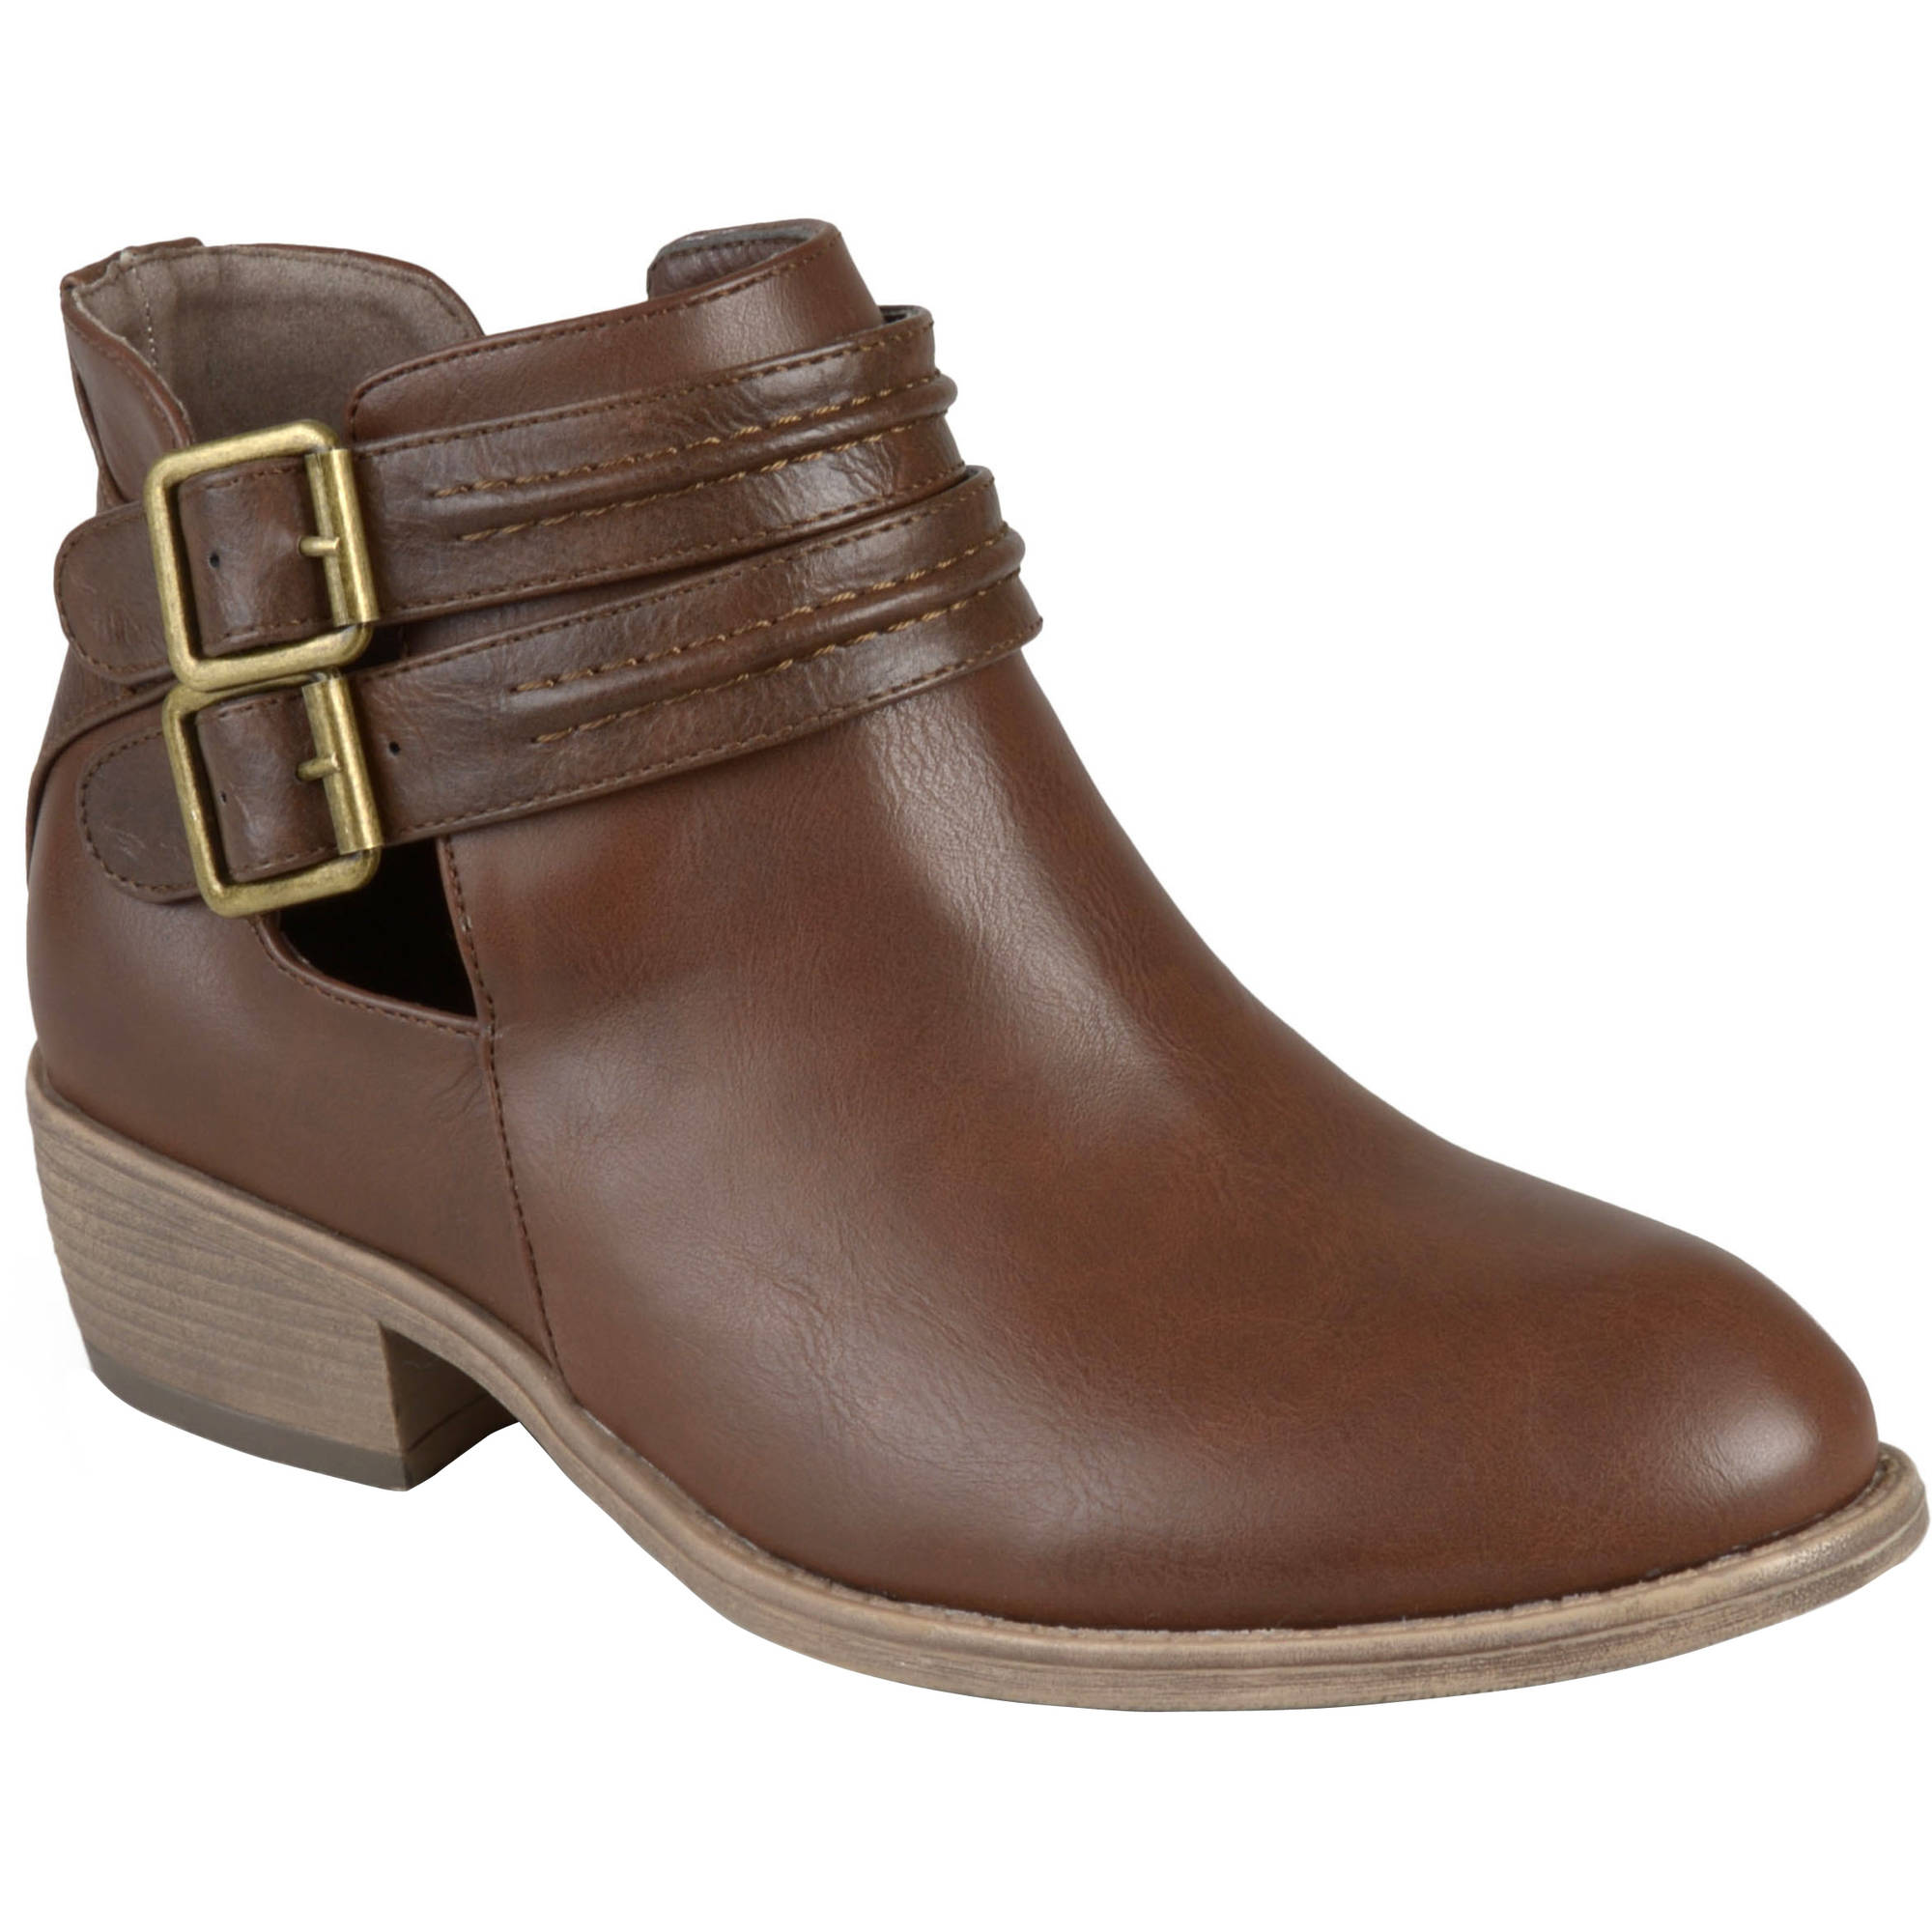 Brinley Co. Women's Faux Leather Side Slit Buckle Booties